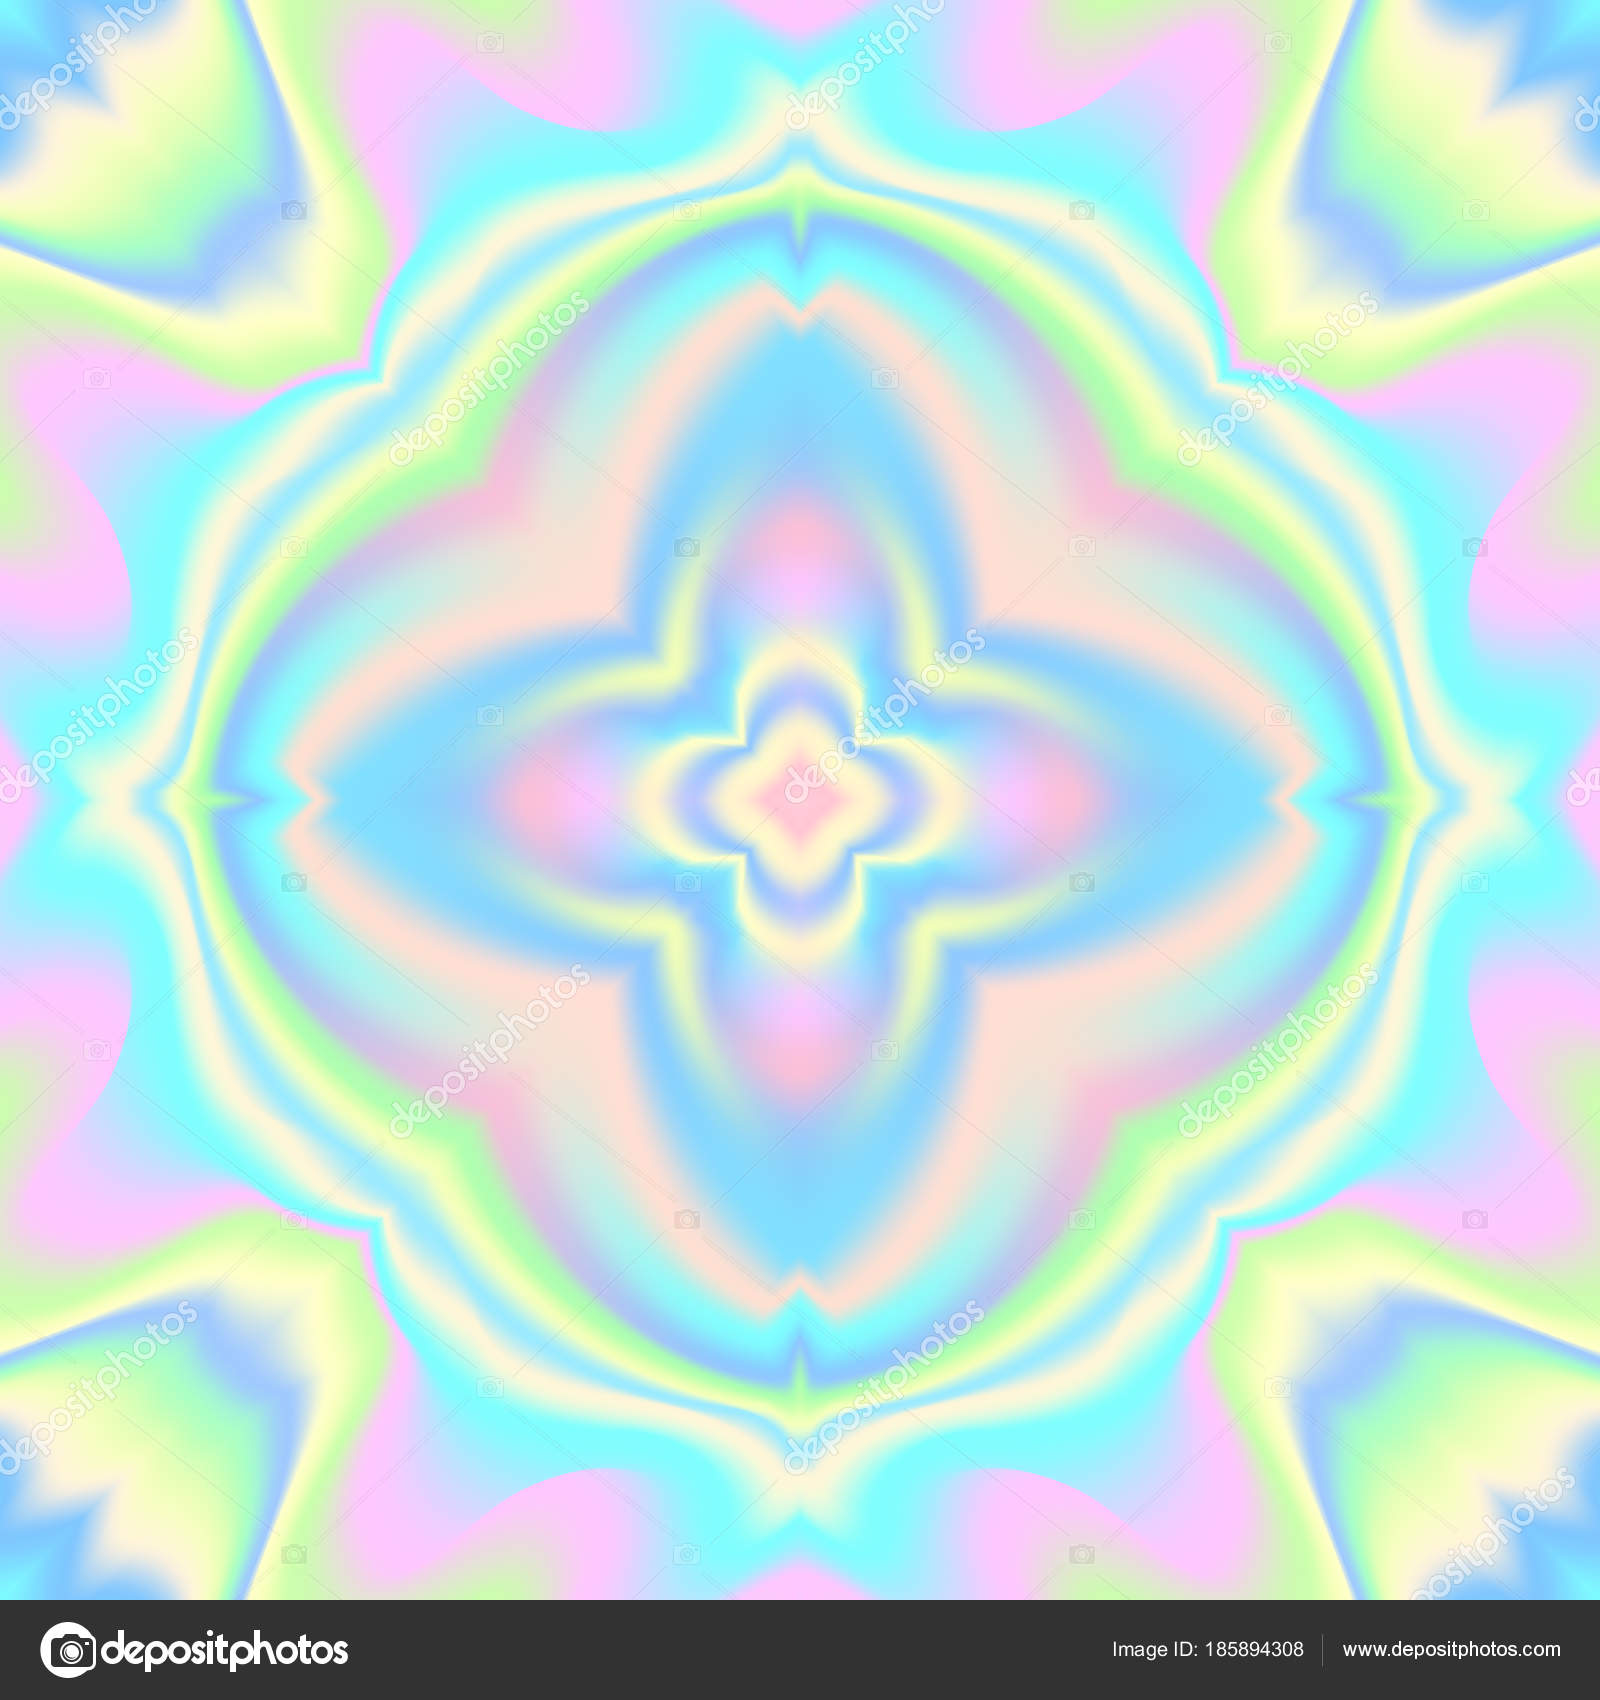 Good Wallpaper Marble Neon - depositphotos_185894308-stock-illustration-rainbow-colors-abstract-vector-background  Trends_578365.jpg